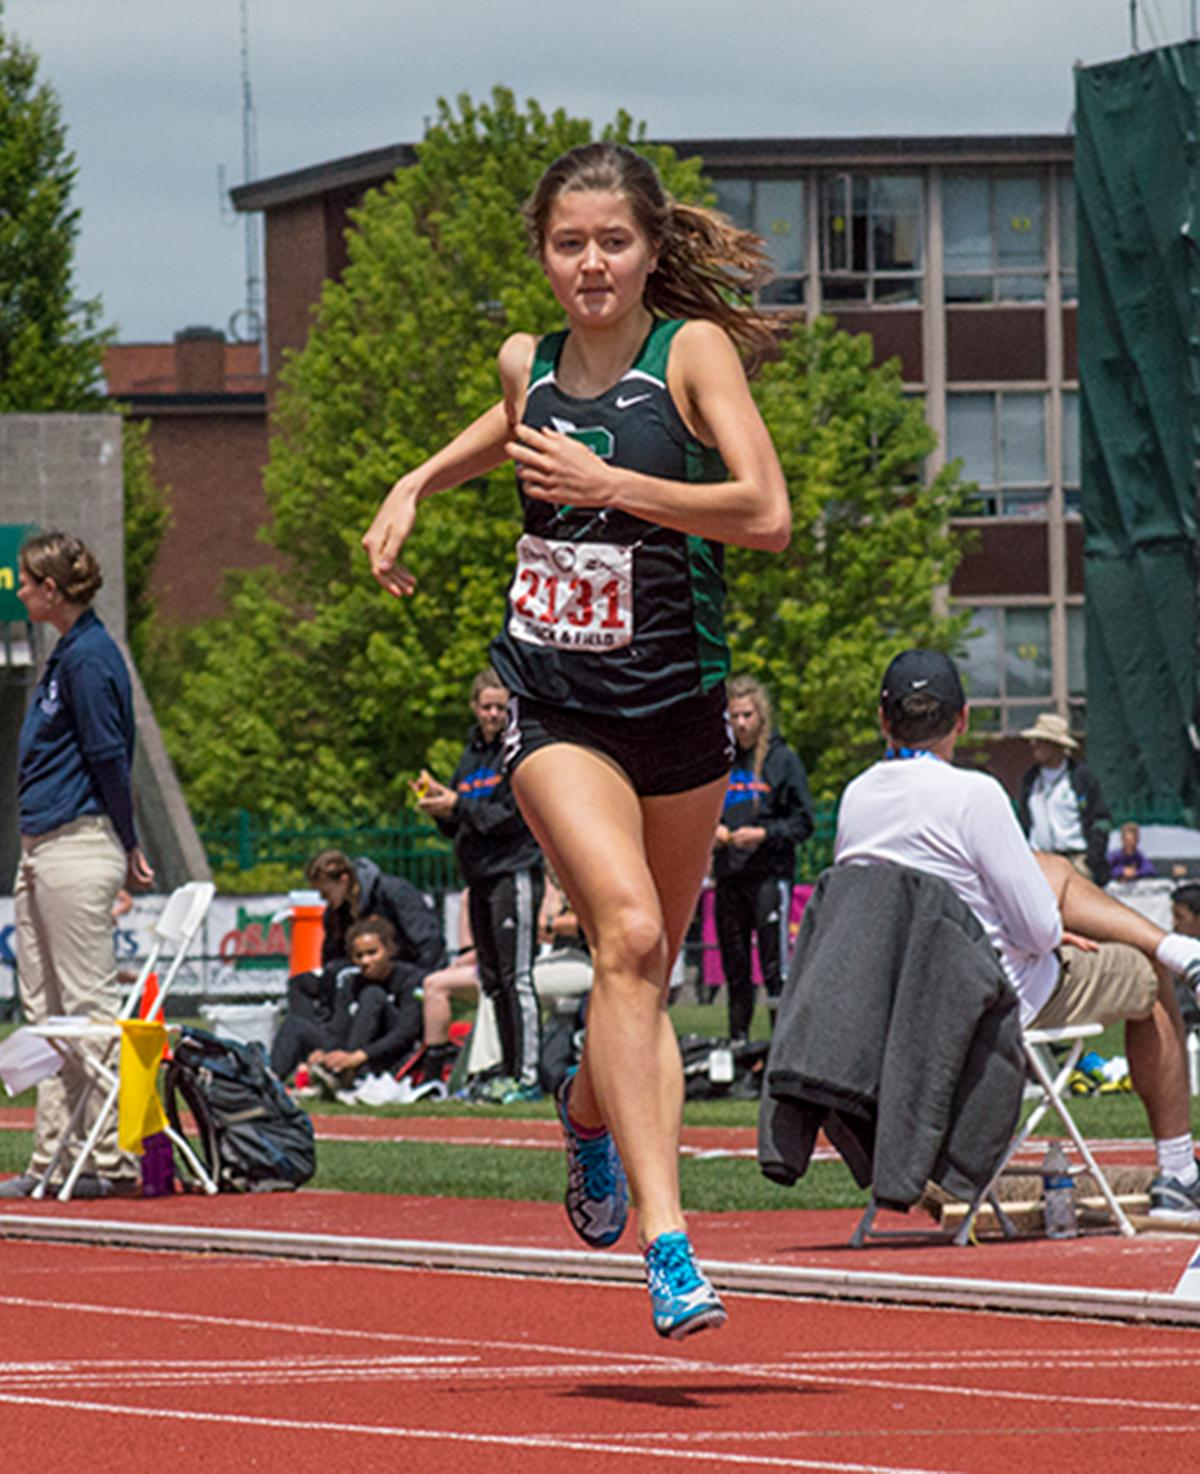 Olivia Brooks of Summit High School coasts to the finish line of the 5A Girls 1500 Meter race. She takes first place with a time of 4:30.71 at the OSAA Track and Field Championships at Hayward Field. Photo by Emily Gonzalez, Oregon News Lab.